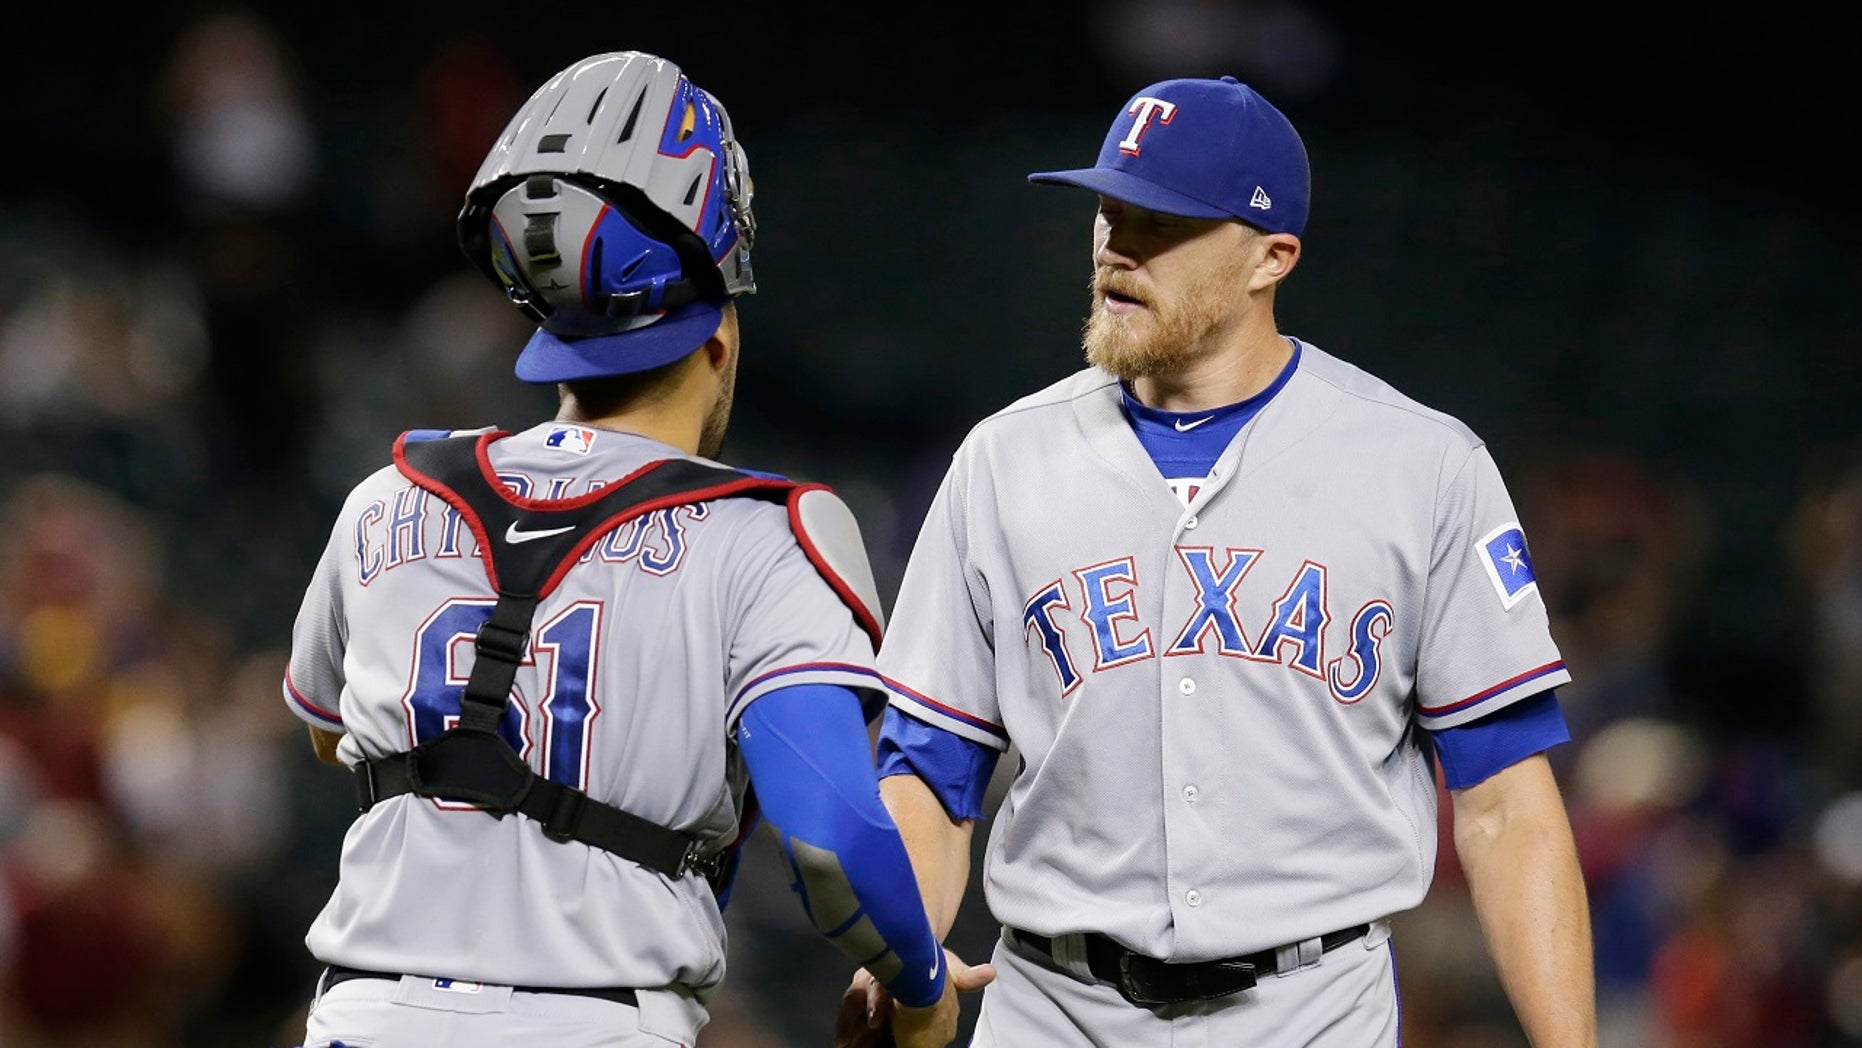 Texas Rangers pitcher Jake Diekman was traded to the Arizona Diamondbacks on Tuesday, and all he had to do was take a golf cart to the other side of Chase Field.